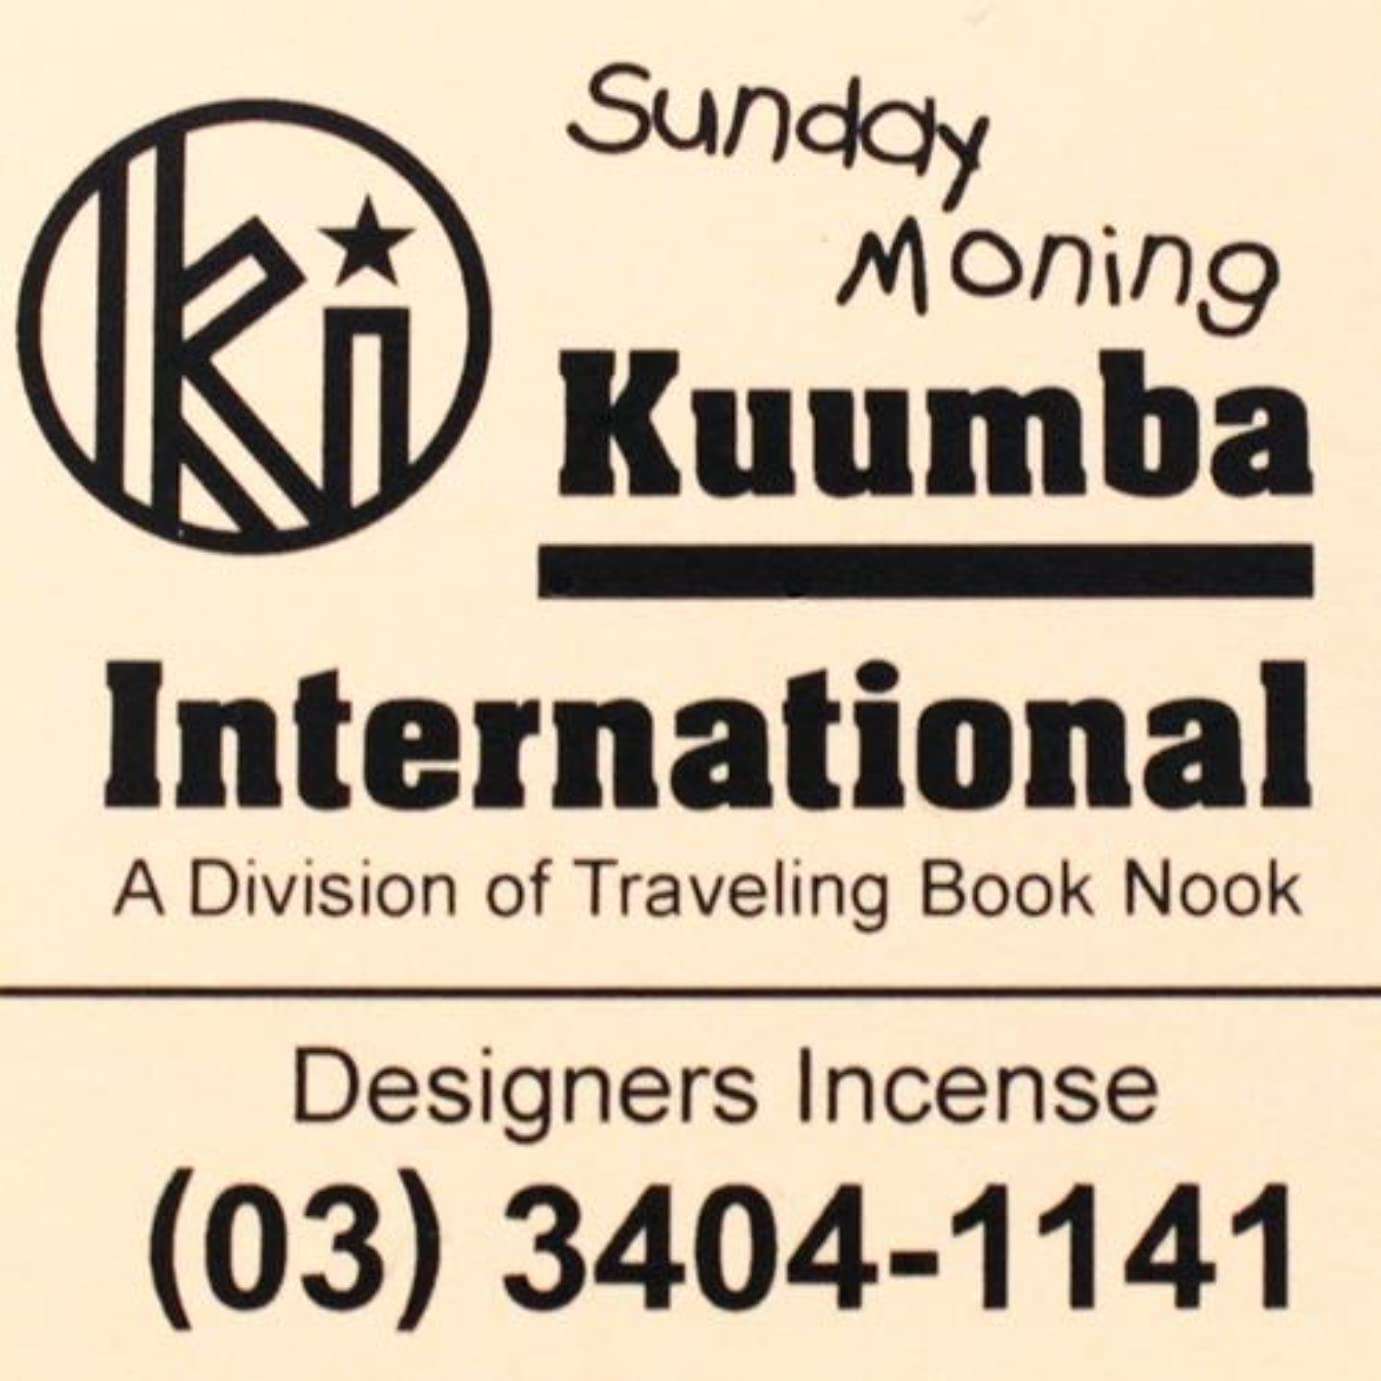 新年精査するマーキング(クンバ) KUUMBA『incense』(Sunday Morning) (Regular size)